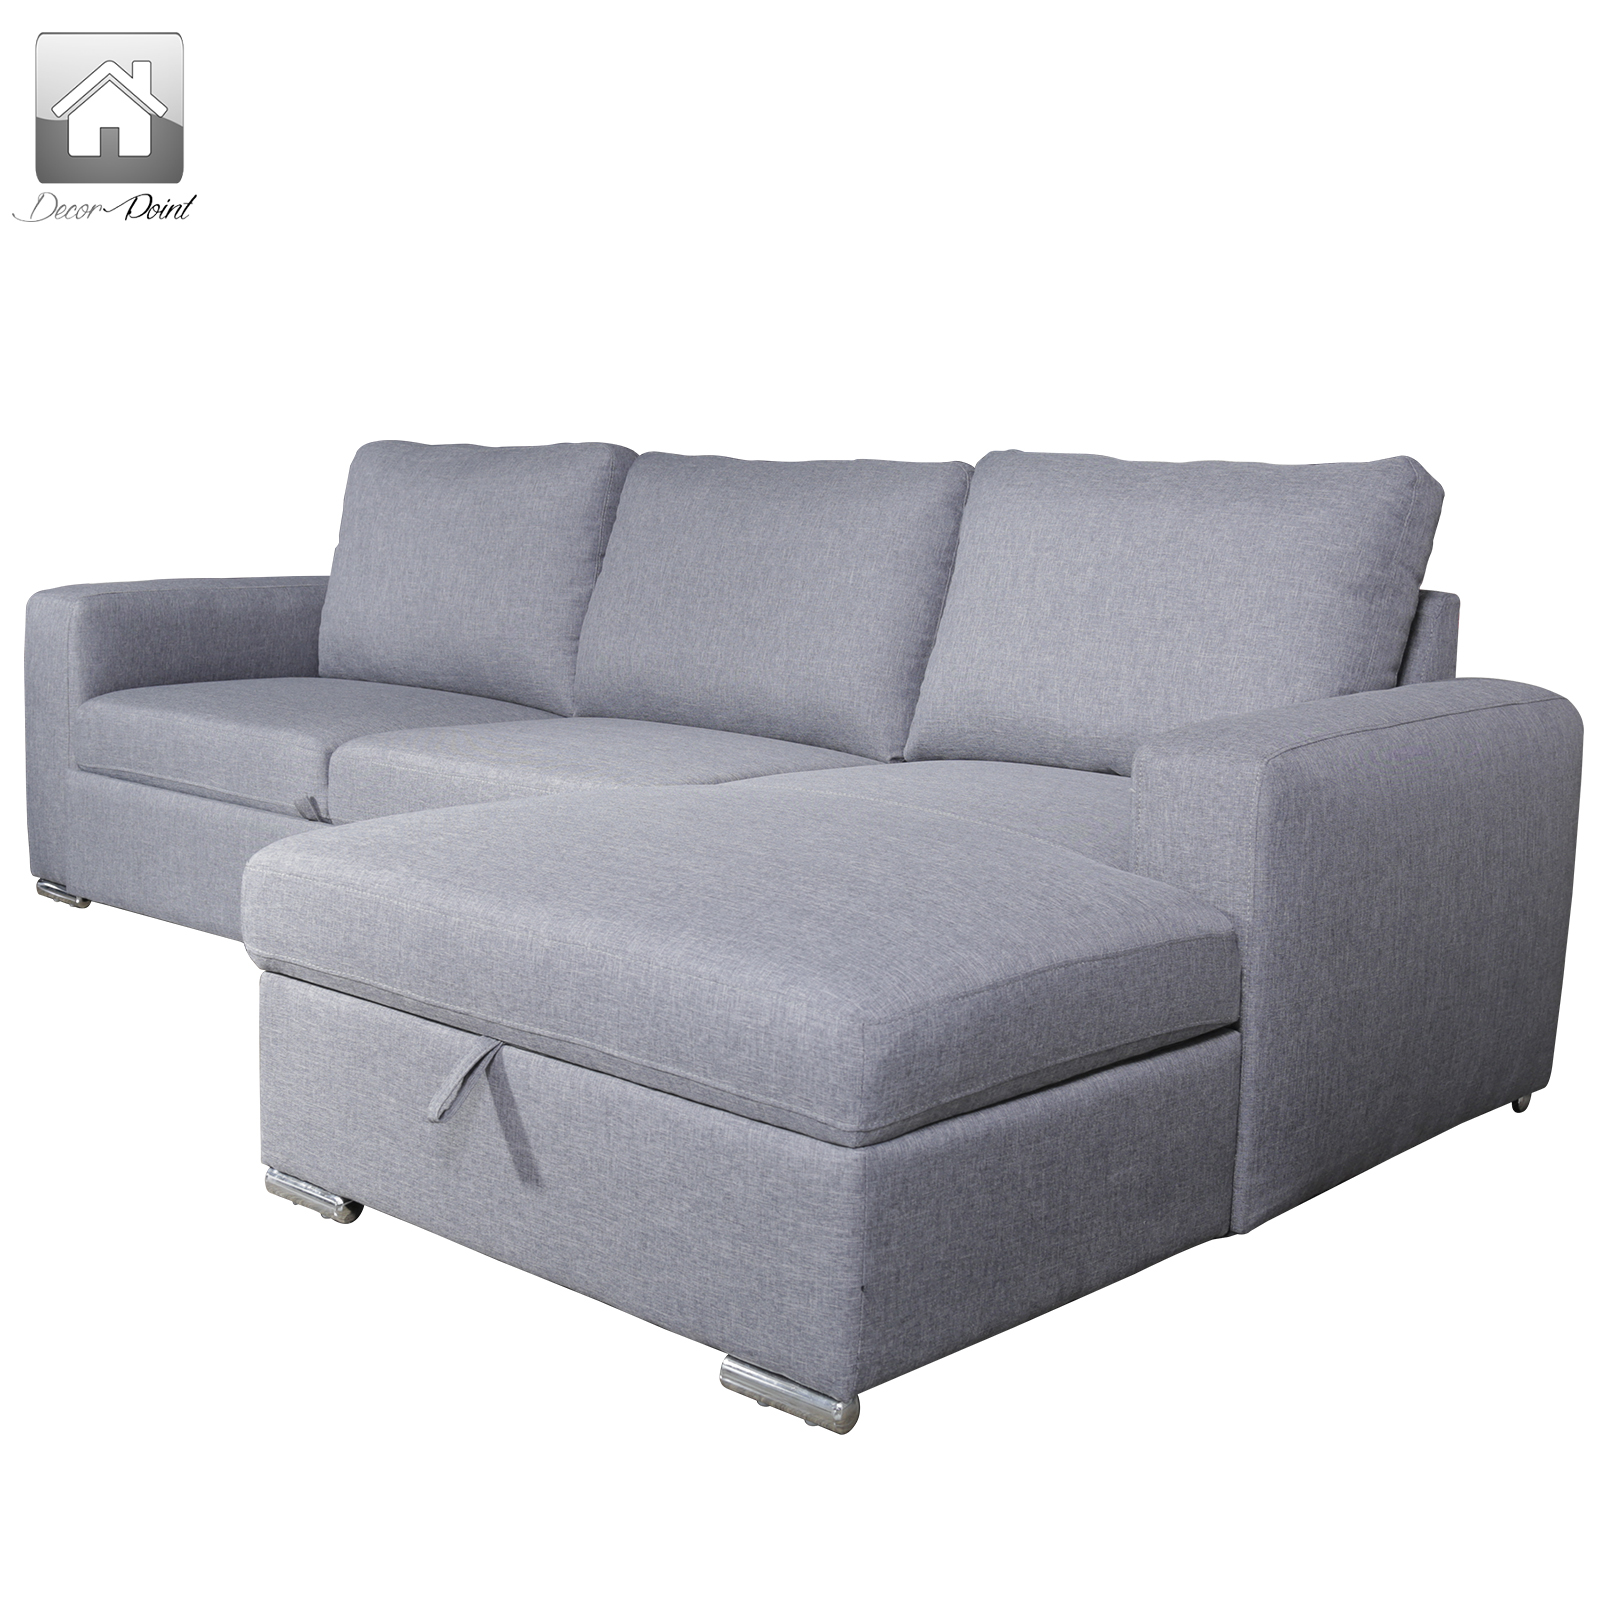 New luxury fabric 3 seater grey coral sofa bed with chaise for 3 seater chaise sofa bed